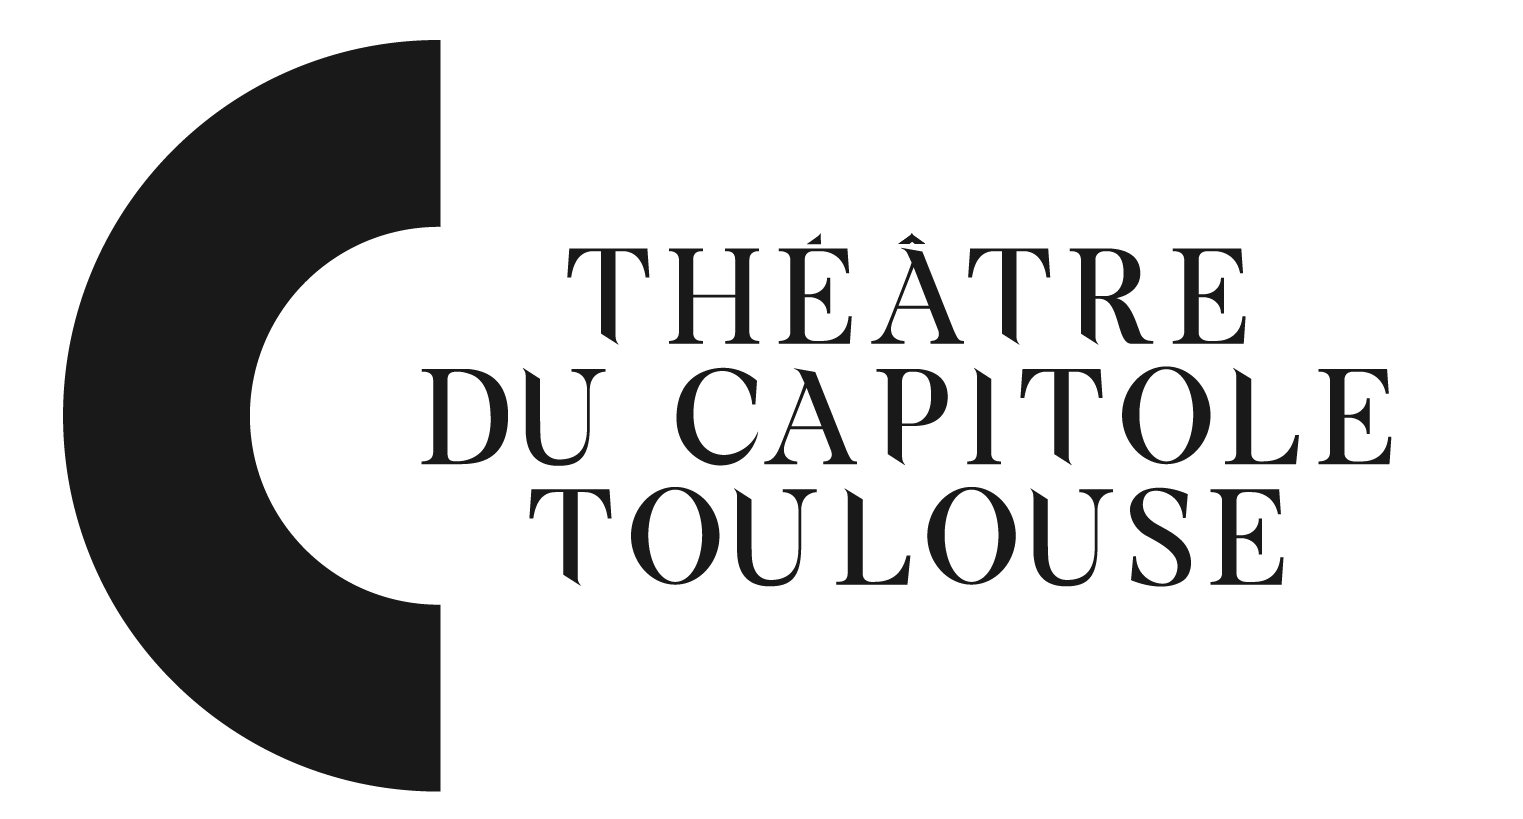 Théâtre du Capitole de Toulouse uses DIESE production planning software for technical inventory